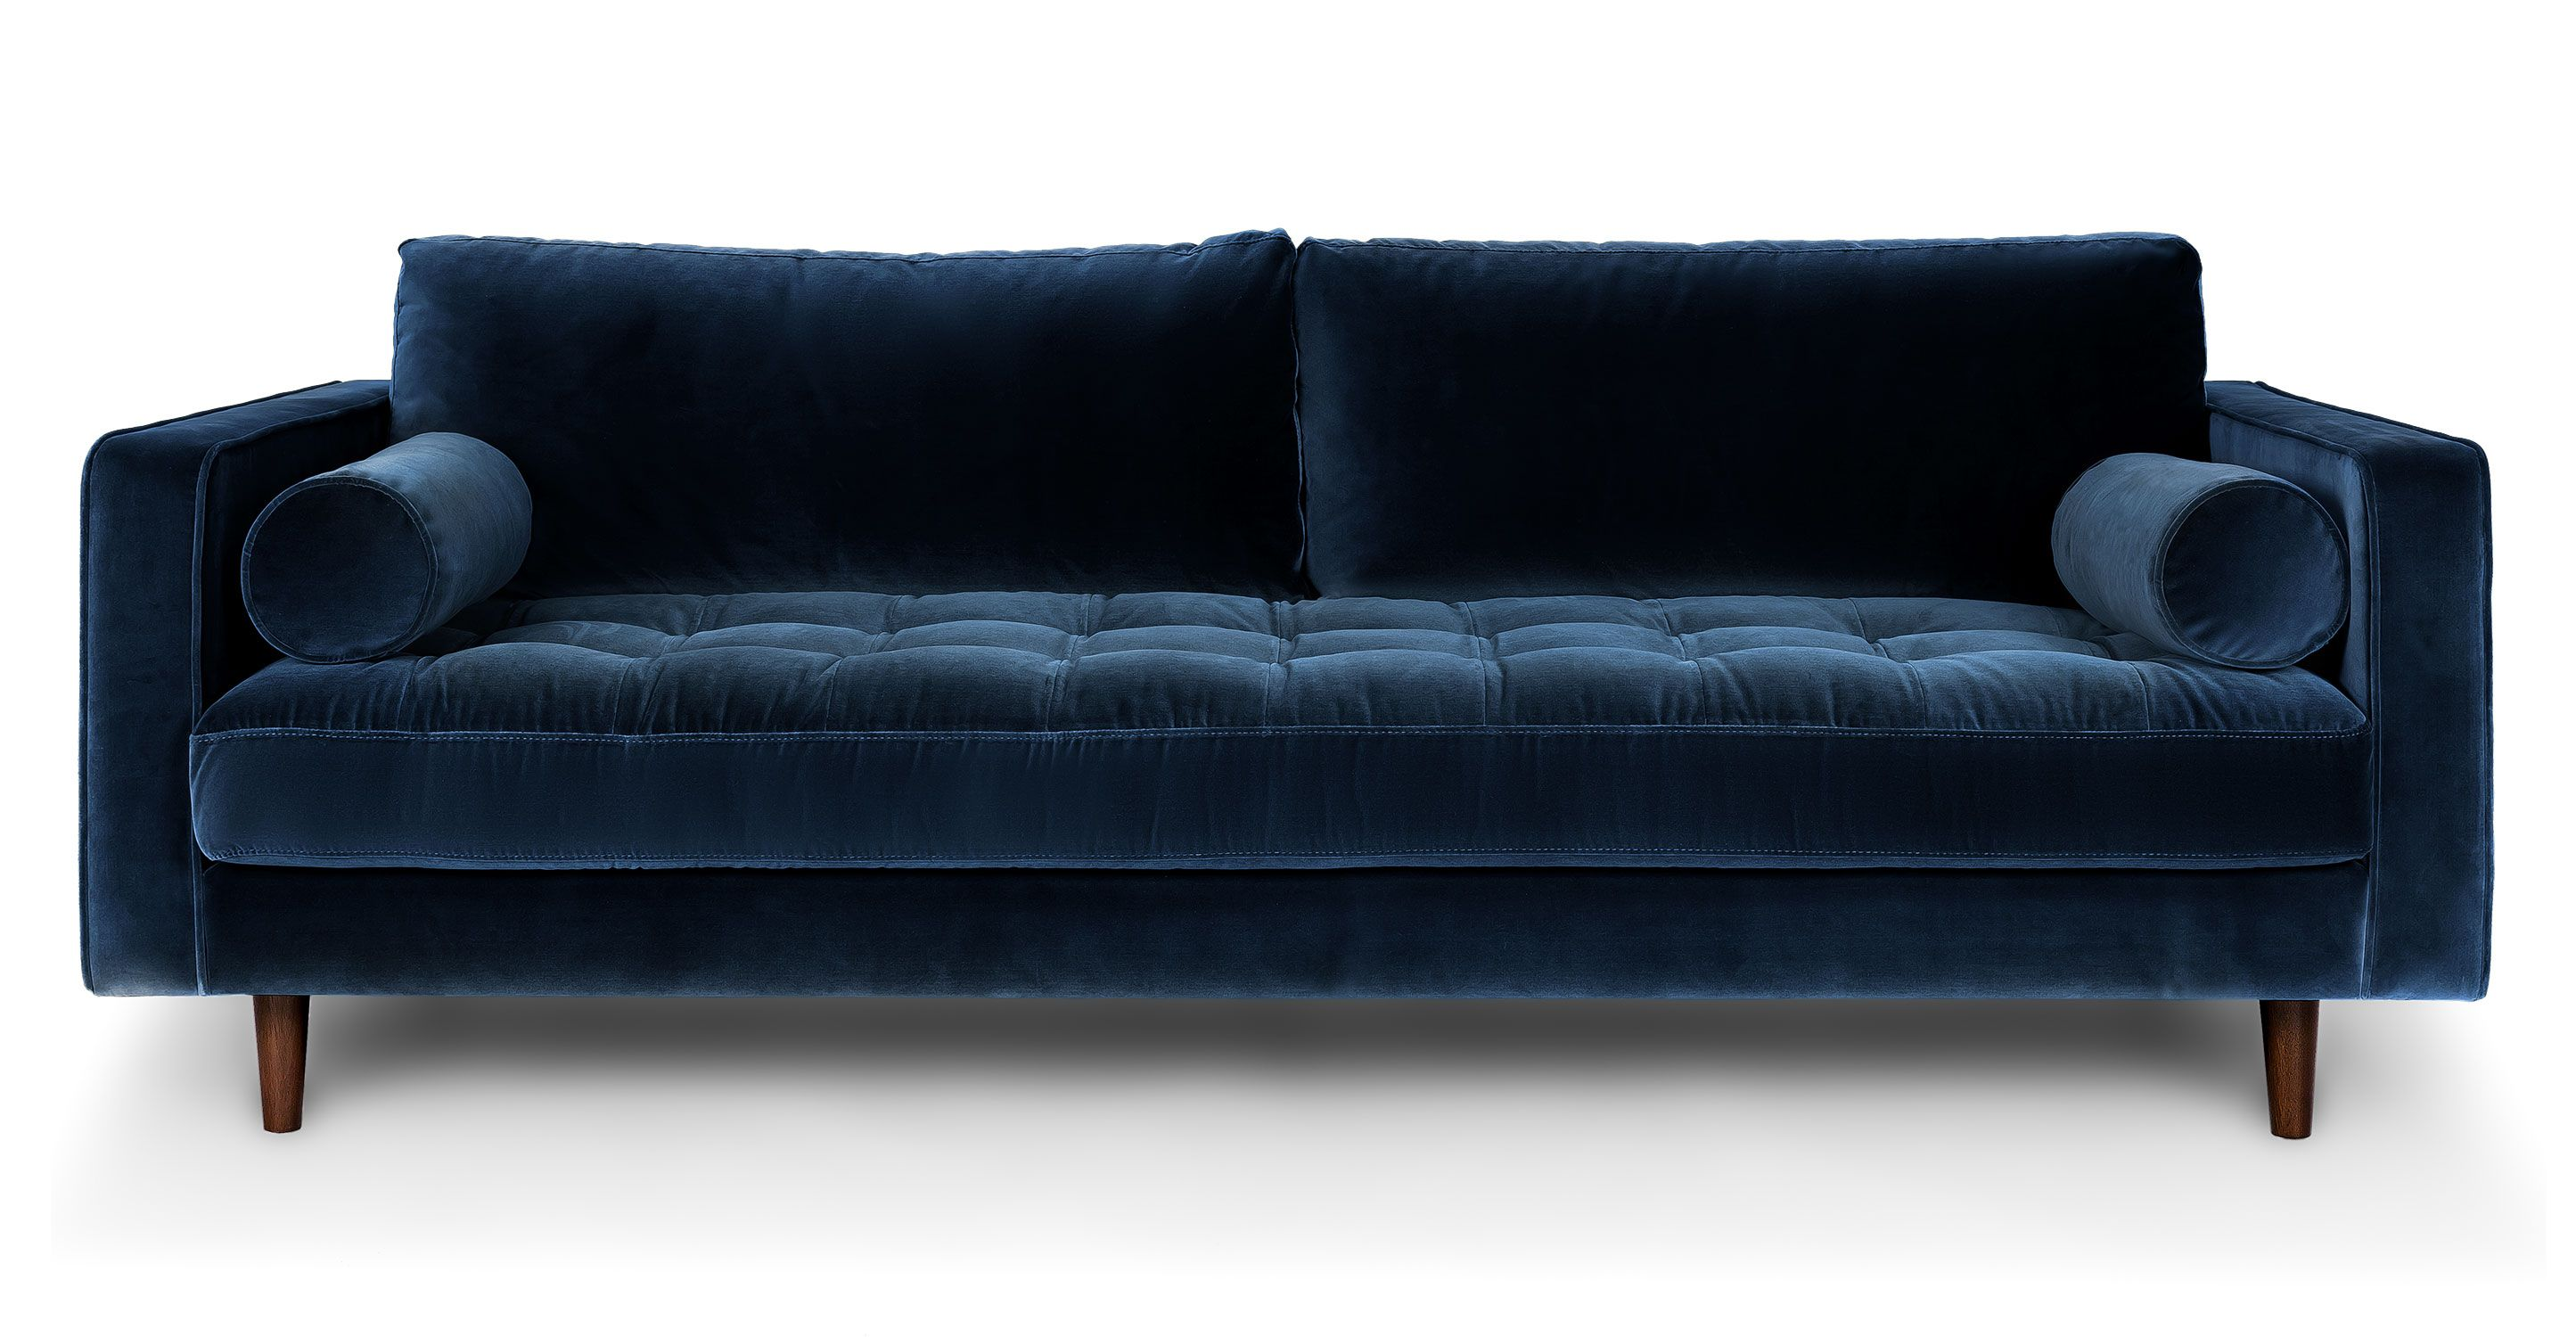 Couches And Sofas Blue Velvet Tufted Sofa Upholstered Article Sven